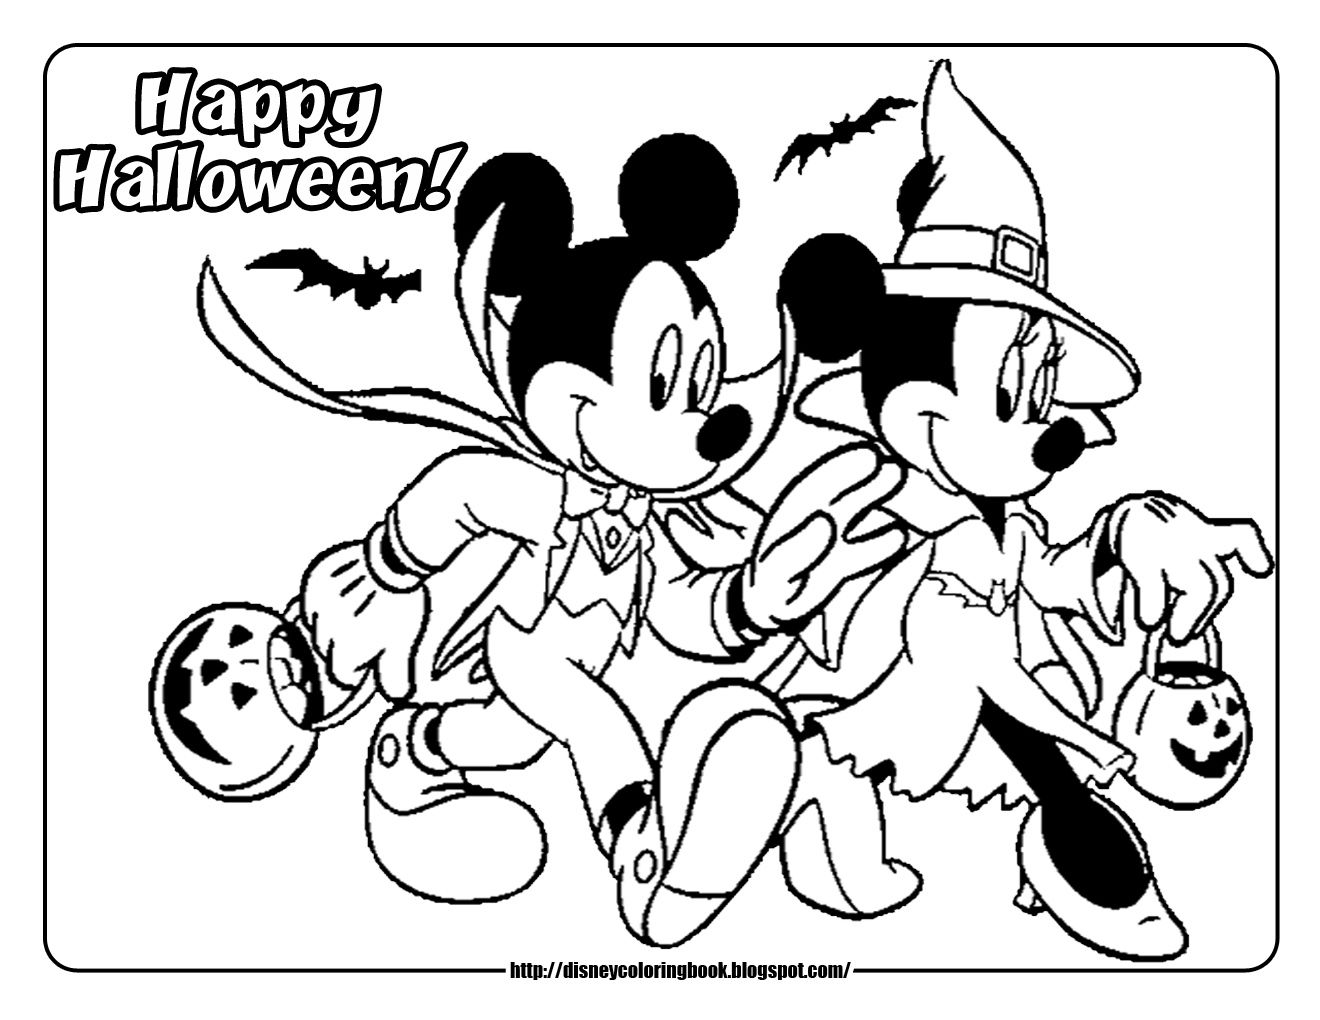 Baby+Disney+Coloring+Pages | ... these fun coloring pages and get ...